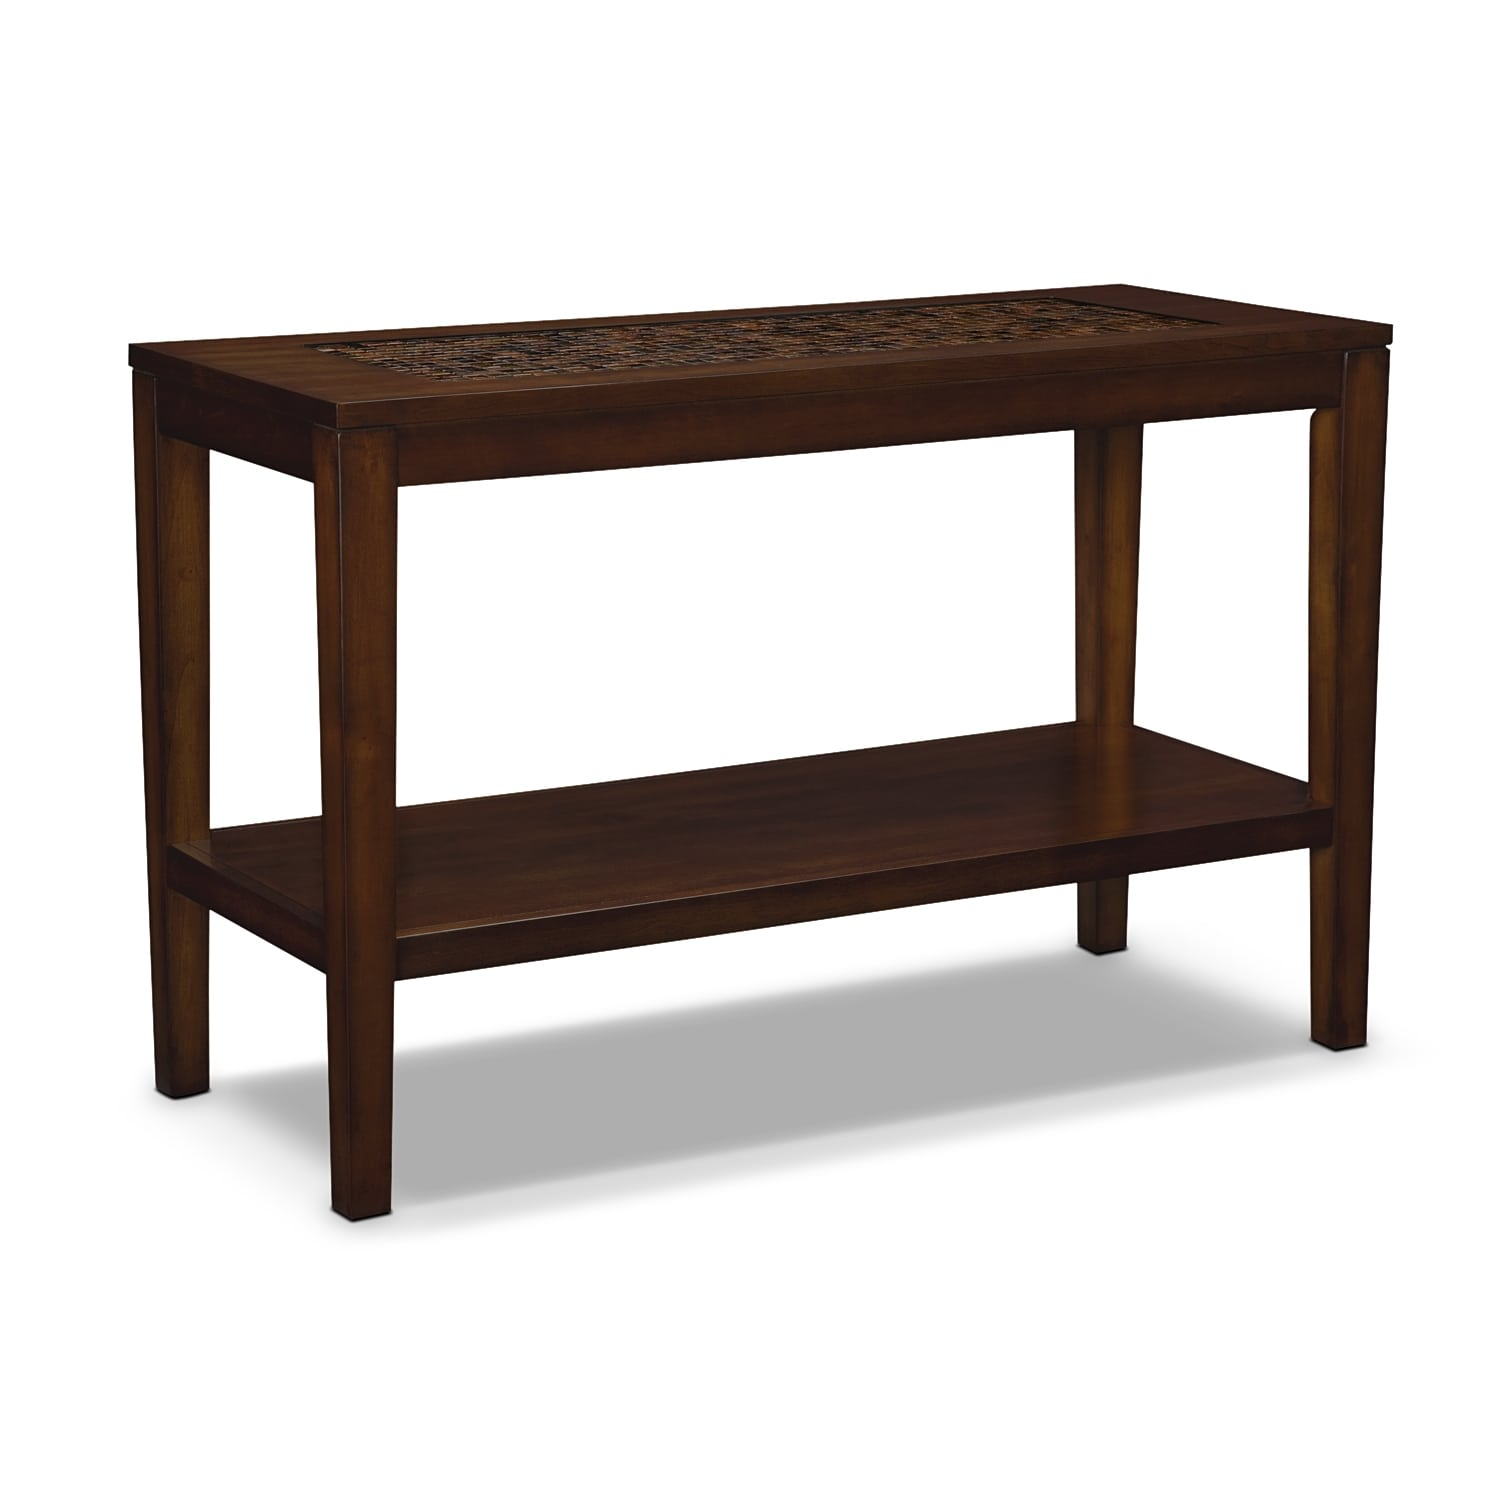 Carson sofa table brown value city furniture for Occasional furniture